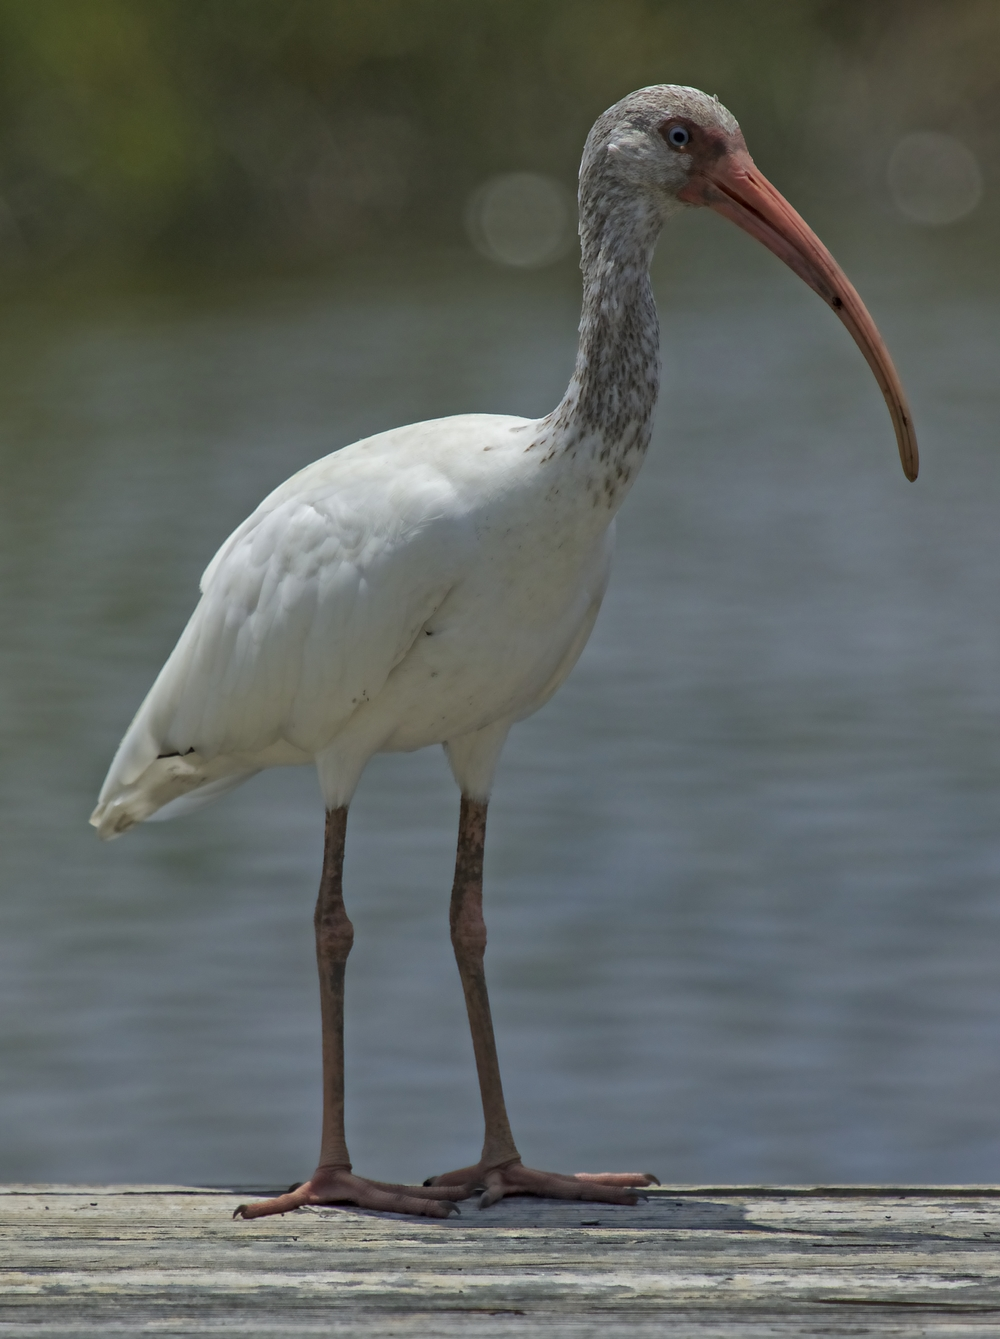 """What's in a name? That which we call a nose   By any other name could smell as sweet."".....Oscar the Ibis"